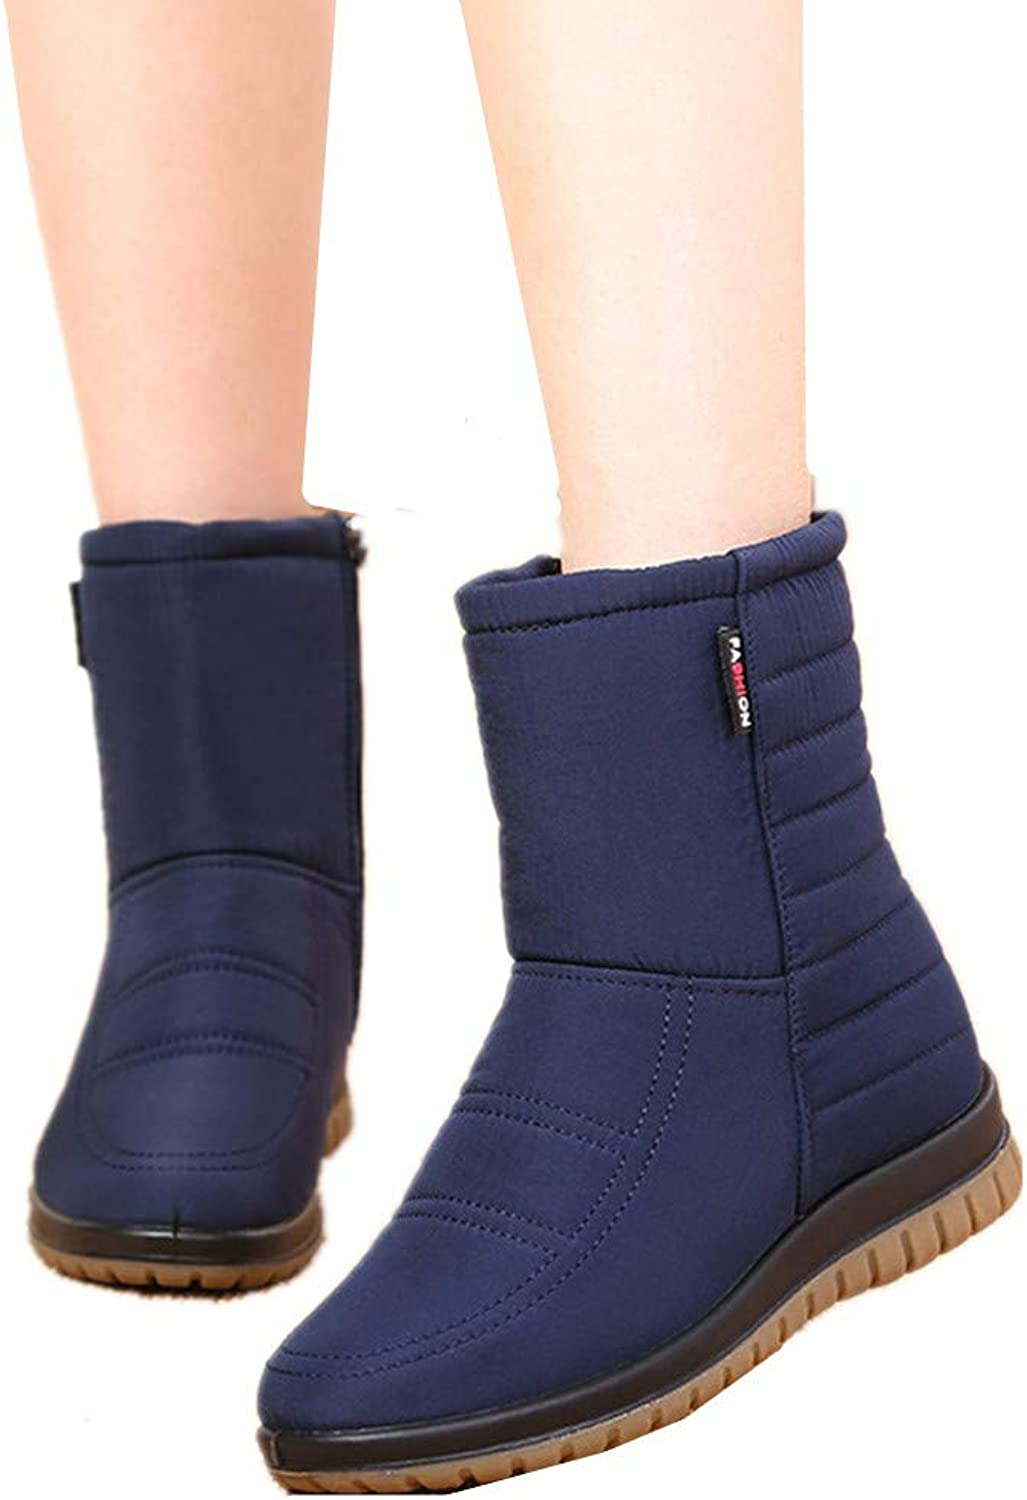 Edv0d2v266 Women Winter Warm Snow Boots Casual Slip On Flat Ankle Boots Home shoes